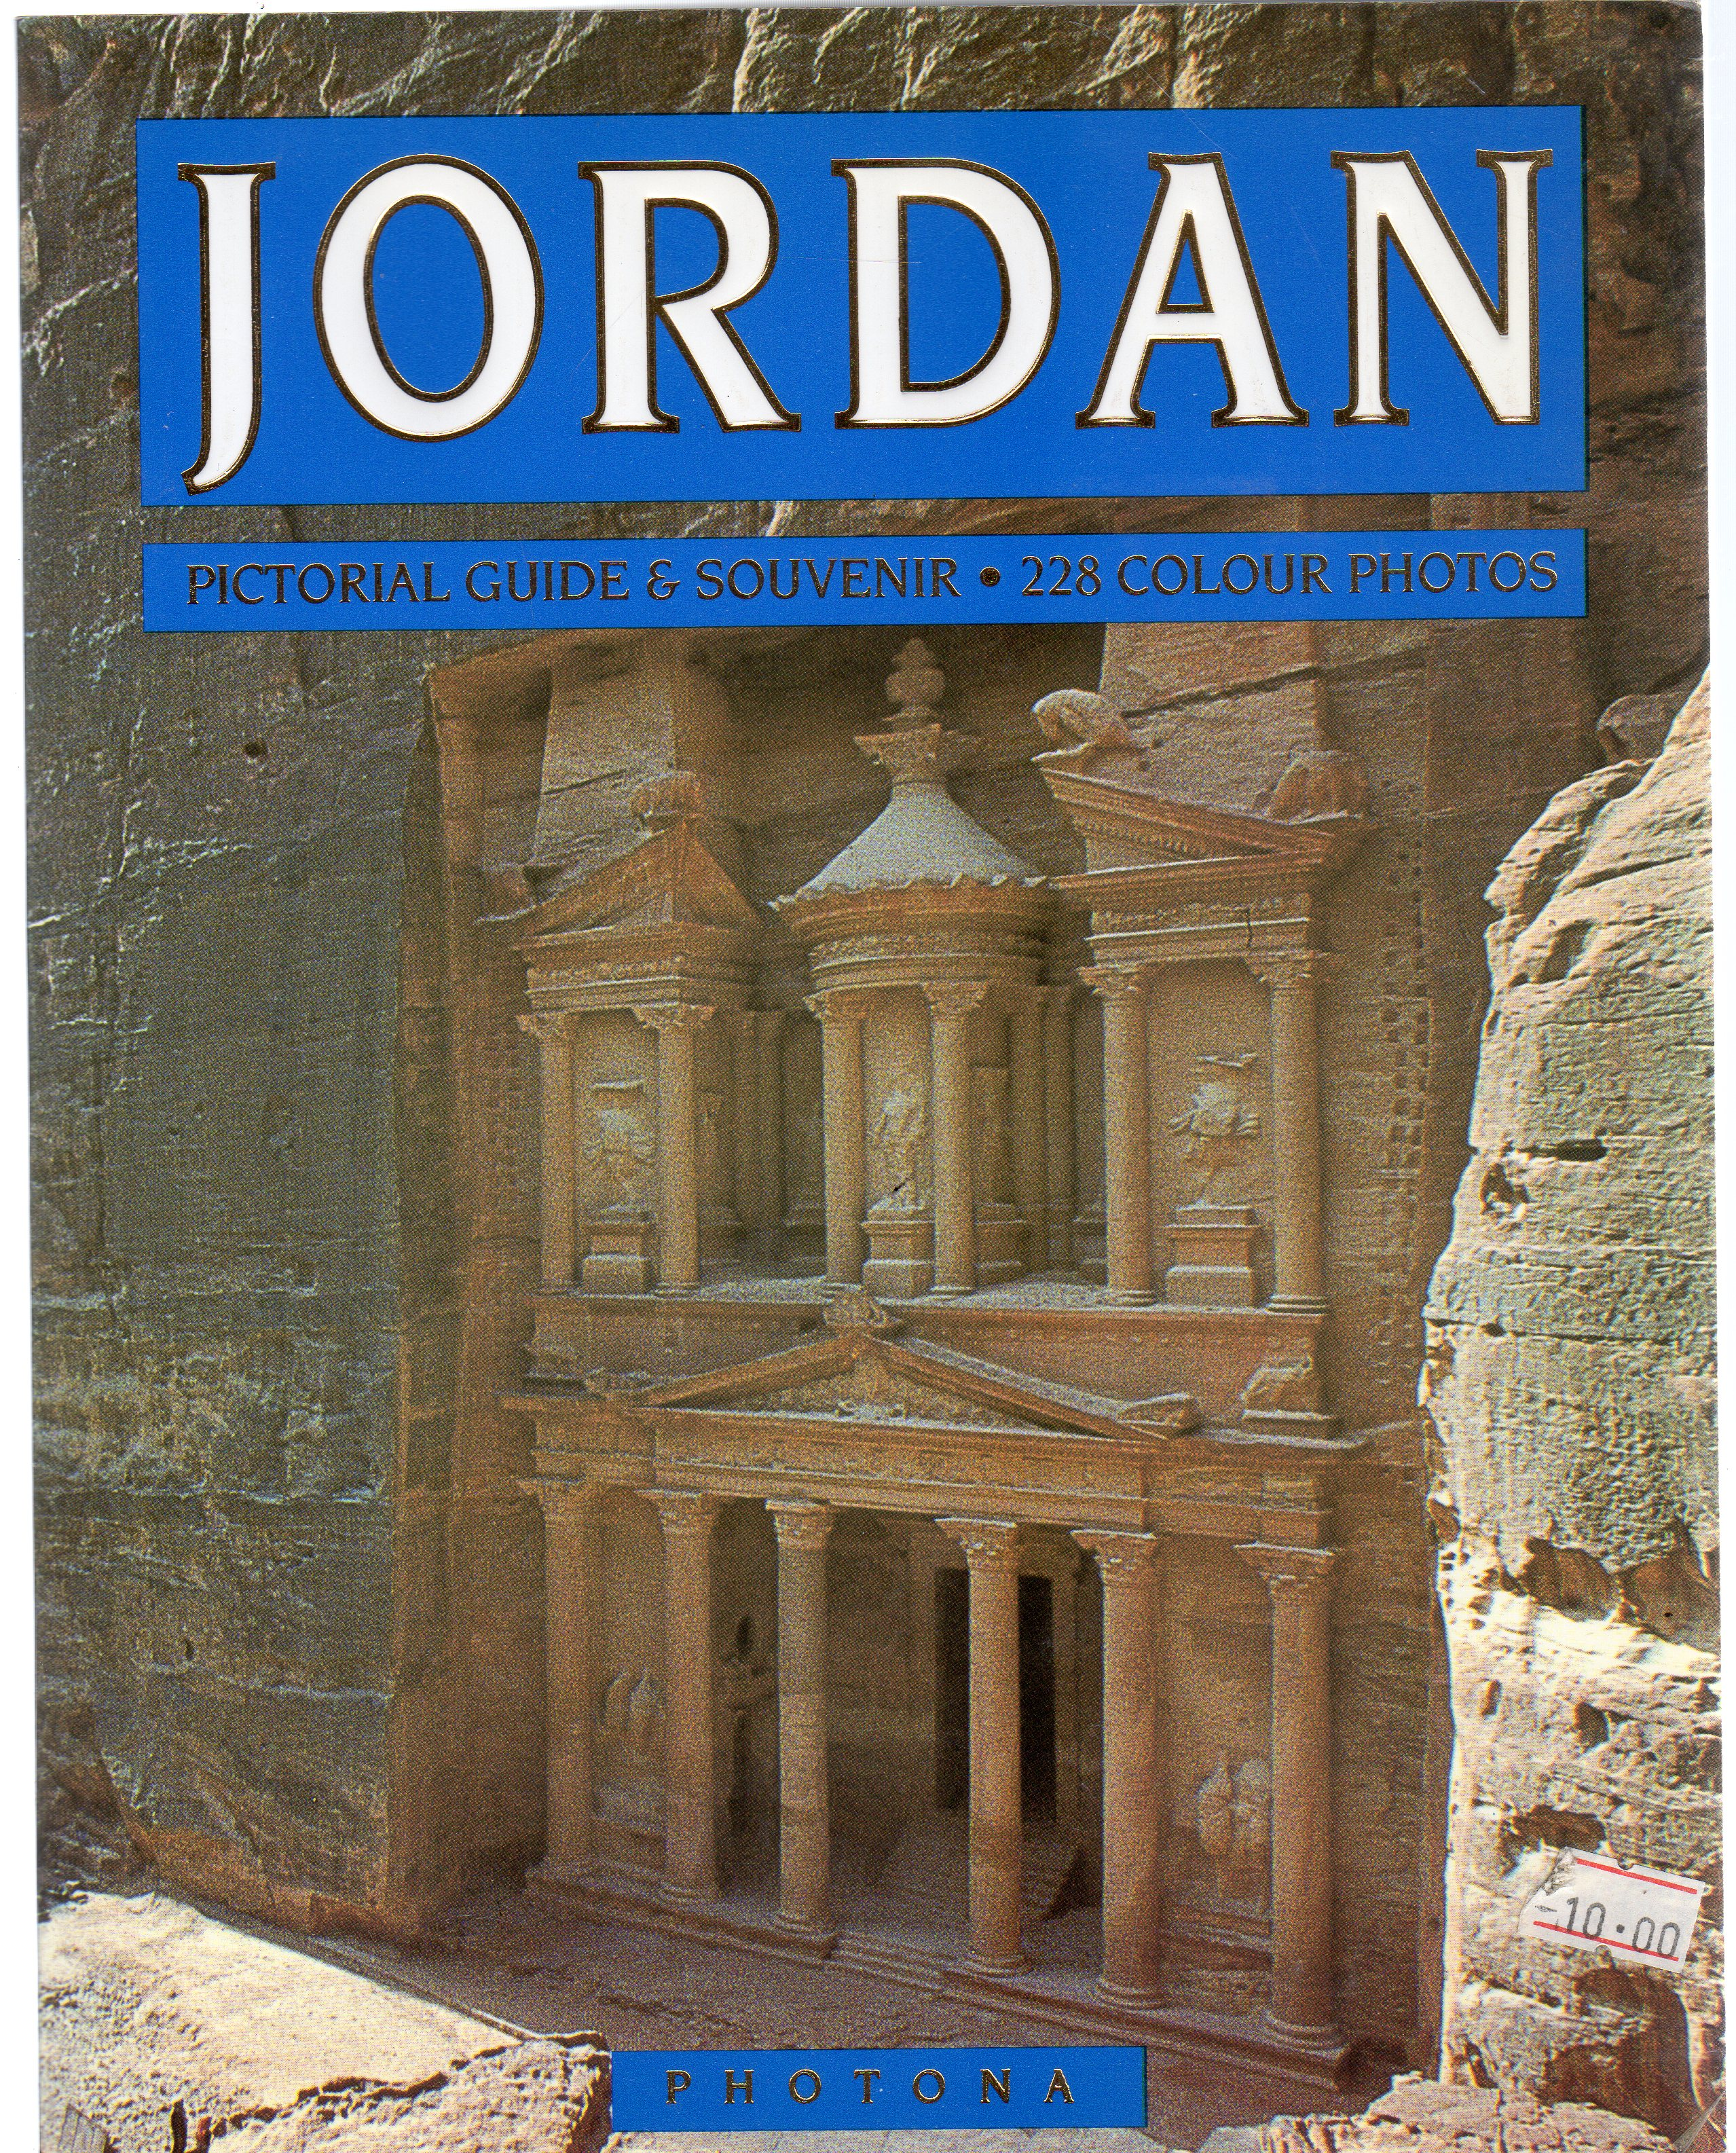 Image for Jordan Pictorial Guide & Souvenir Guide